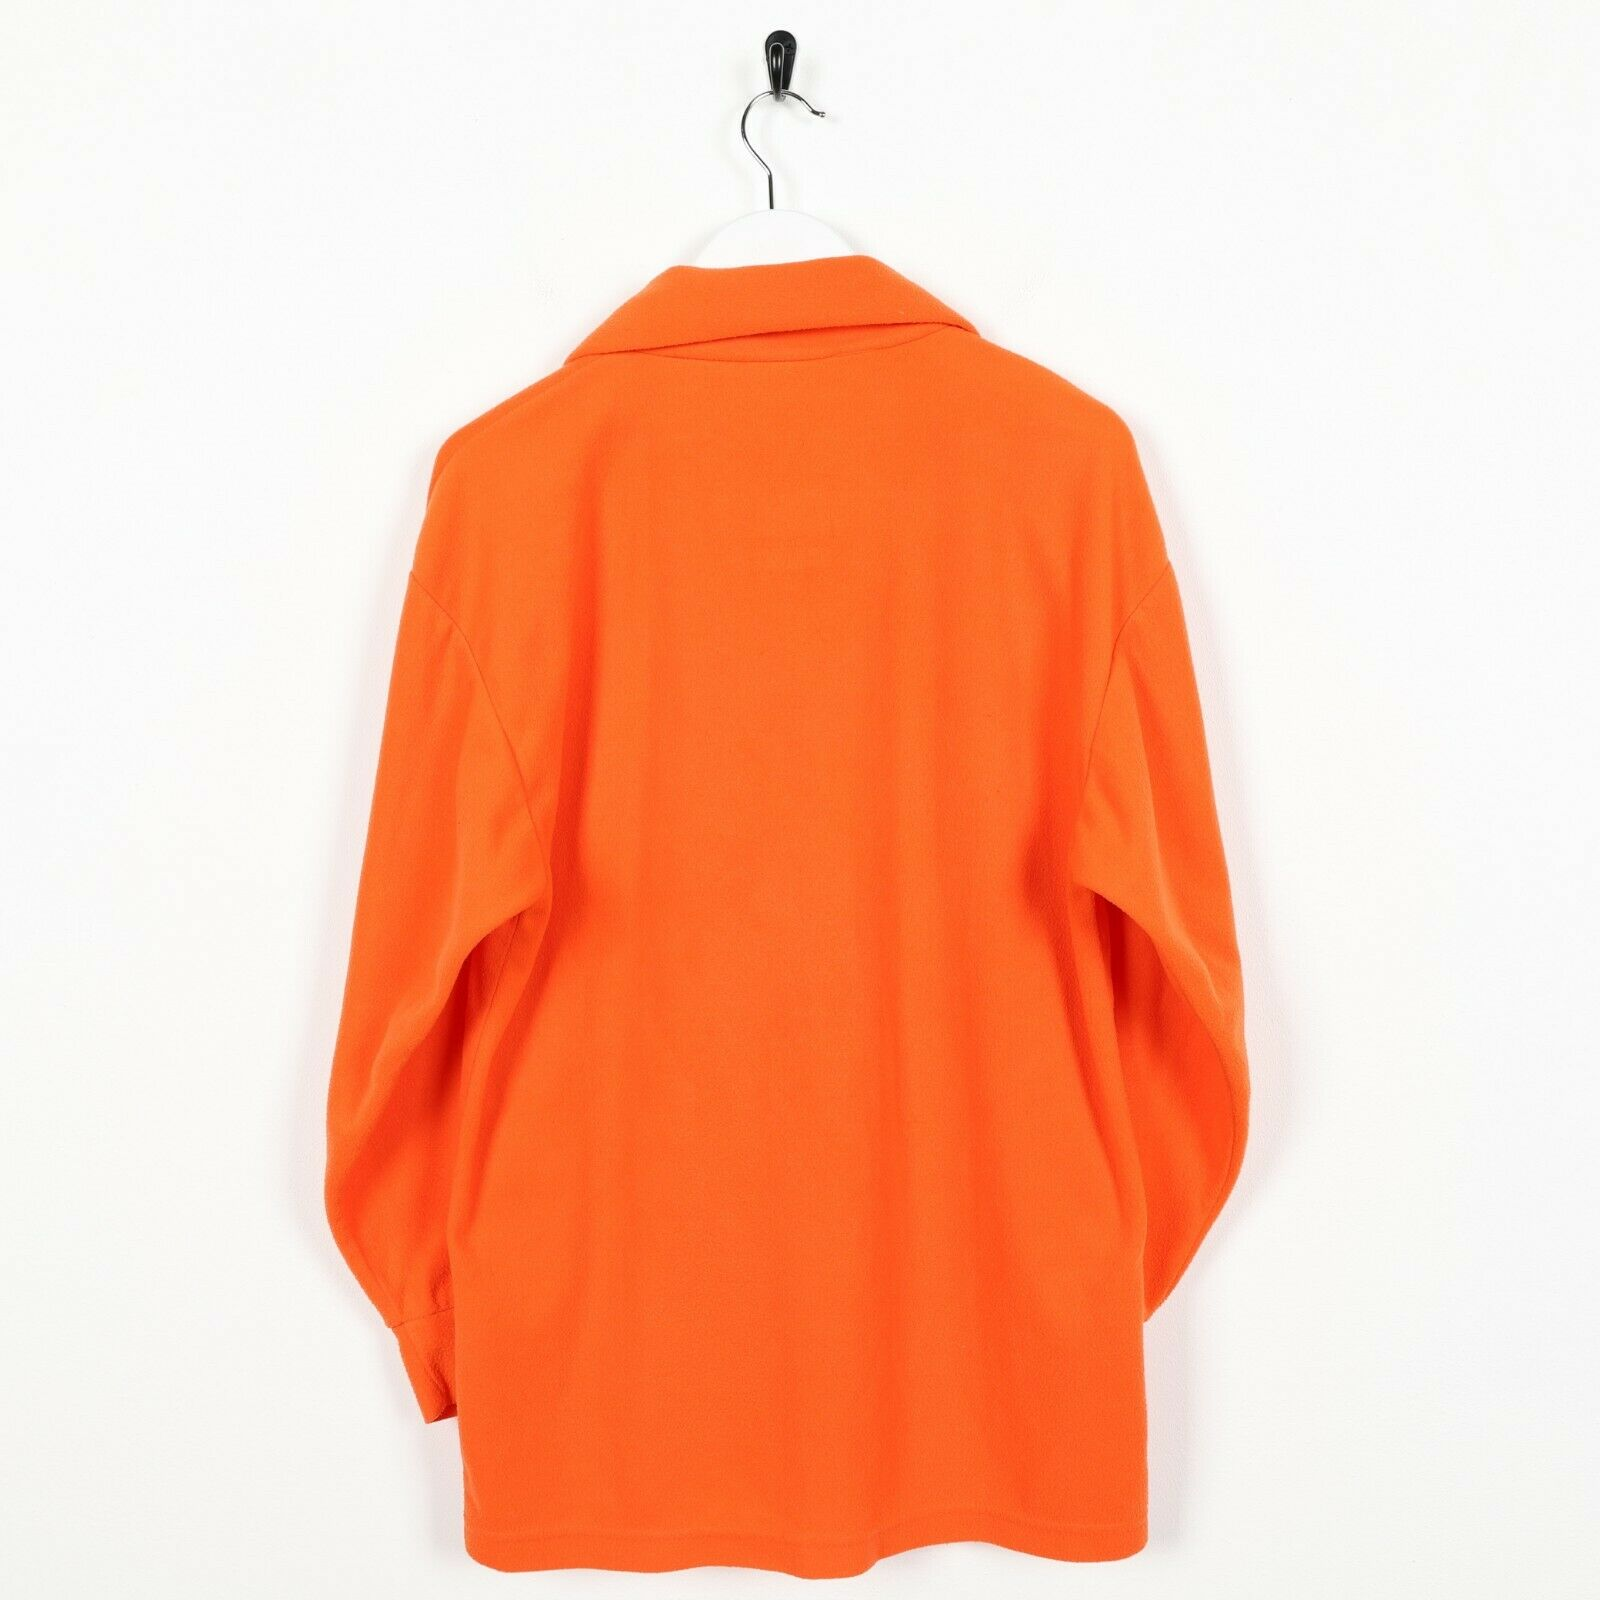 Vintage SERGIO TACCHINI Small Logo 1/4 Zip Fleece Top Orange small S